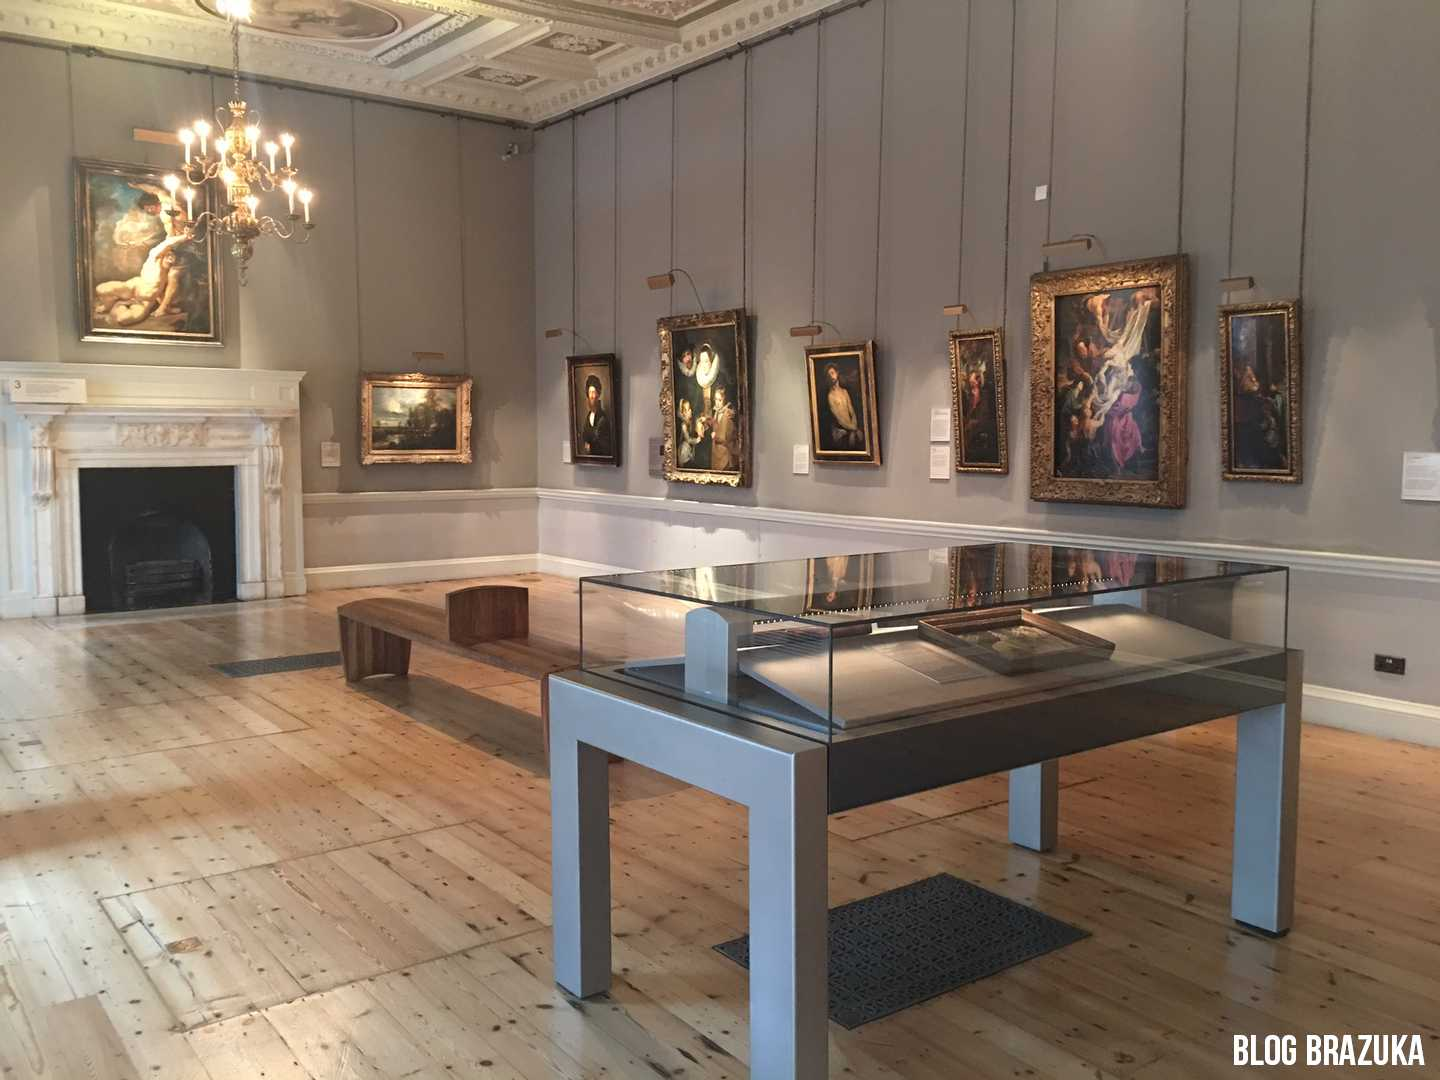 The Courtauld Gallery